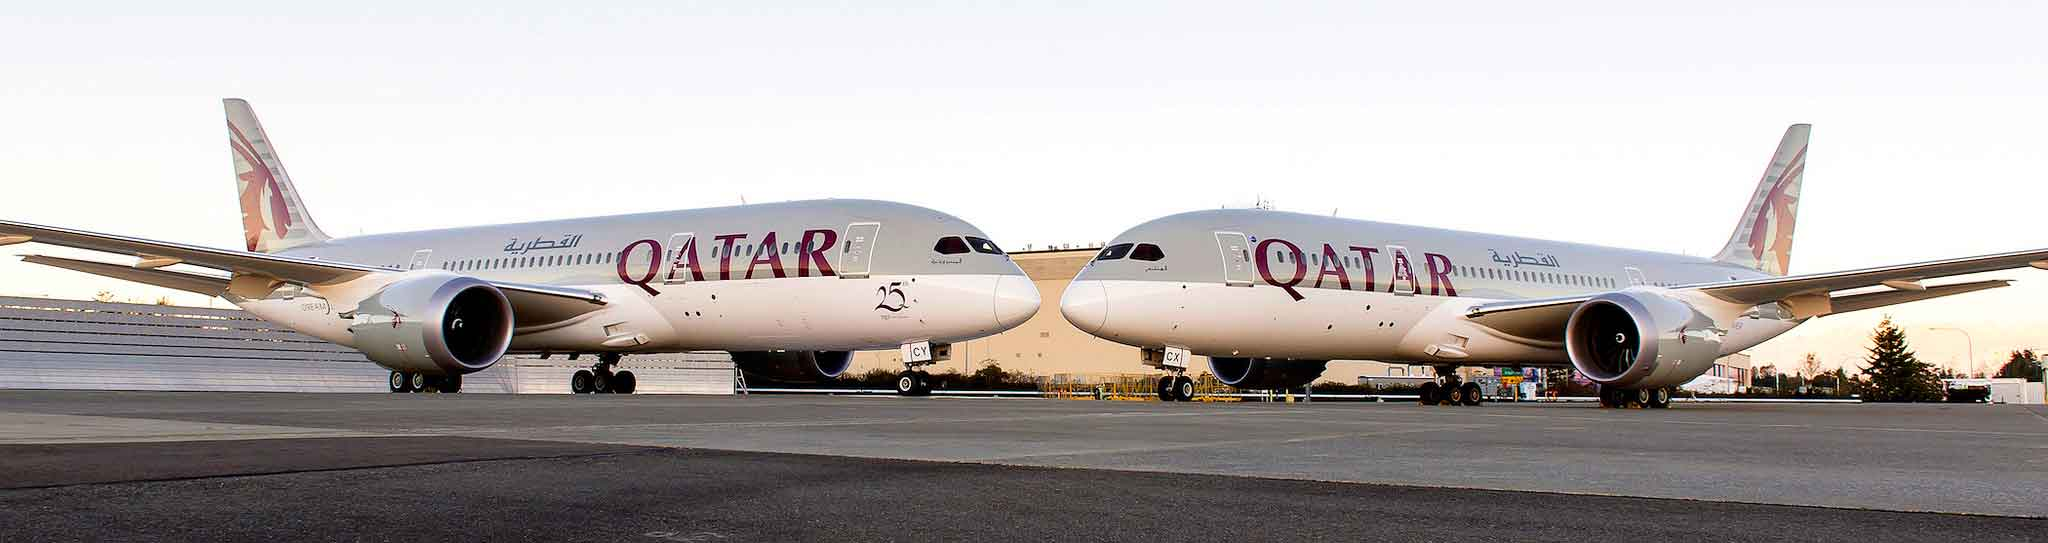 Qatar Airways takes delivery of 24th and 25th Boeing 787 Dreamliners